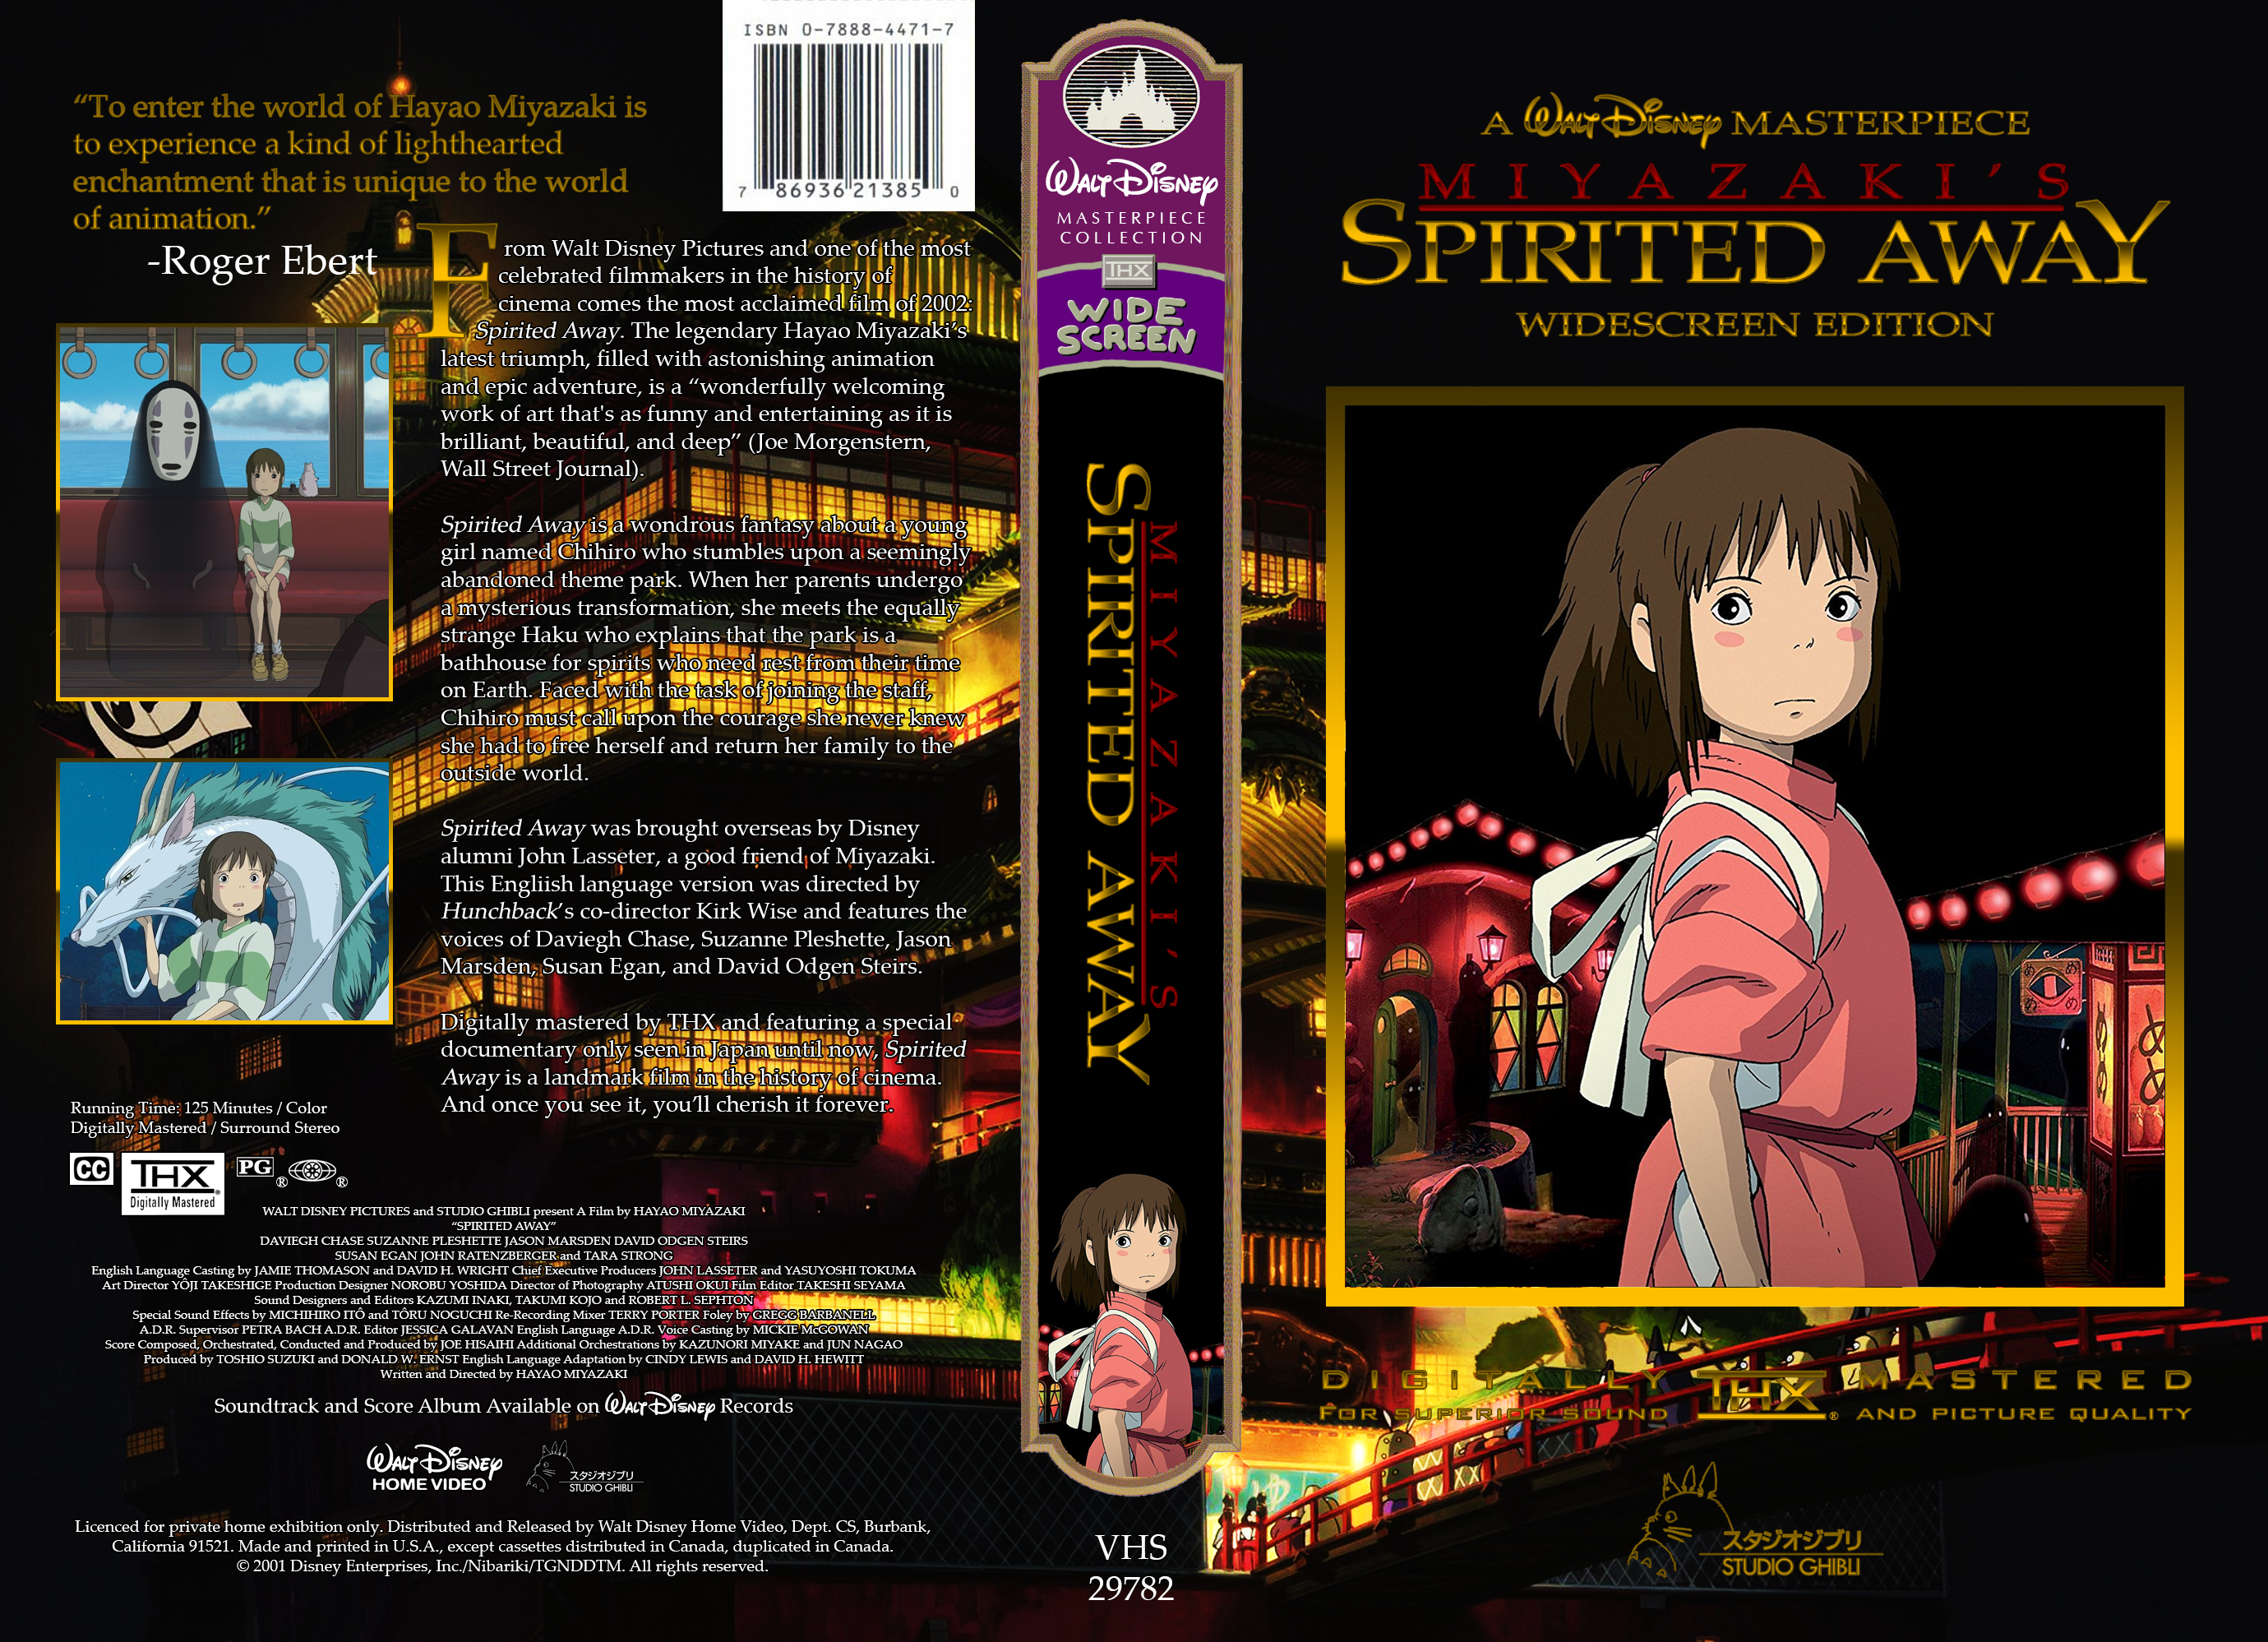 Miyazaki S Spirited Away 2003 Vhs Cover By Thedisney1901atda On Deviantart